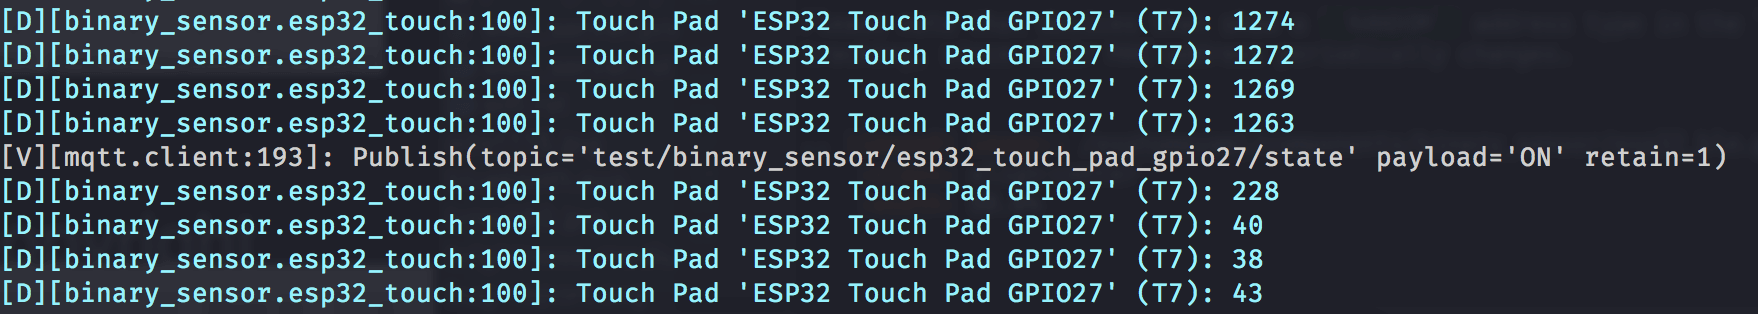 https://d33wubrfki0l68.cloudfront.net/294606bef47eeaf6fd40ac2ef9b3f22736c0e164/613f3/_images/esp32_touch-finding_thresholds.png